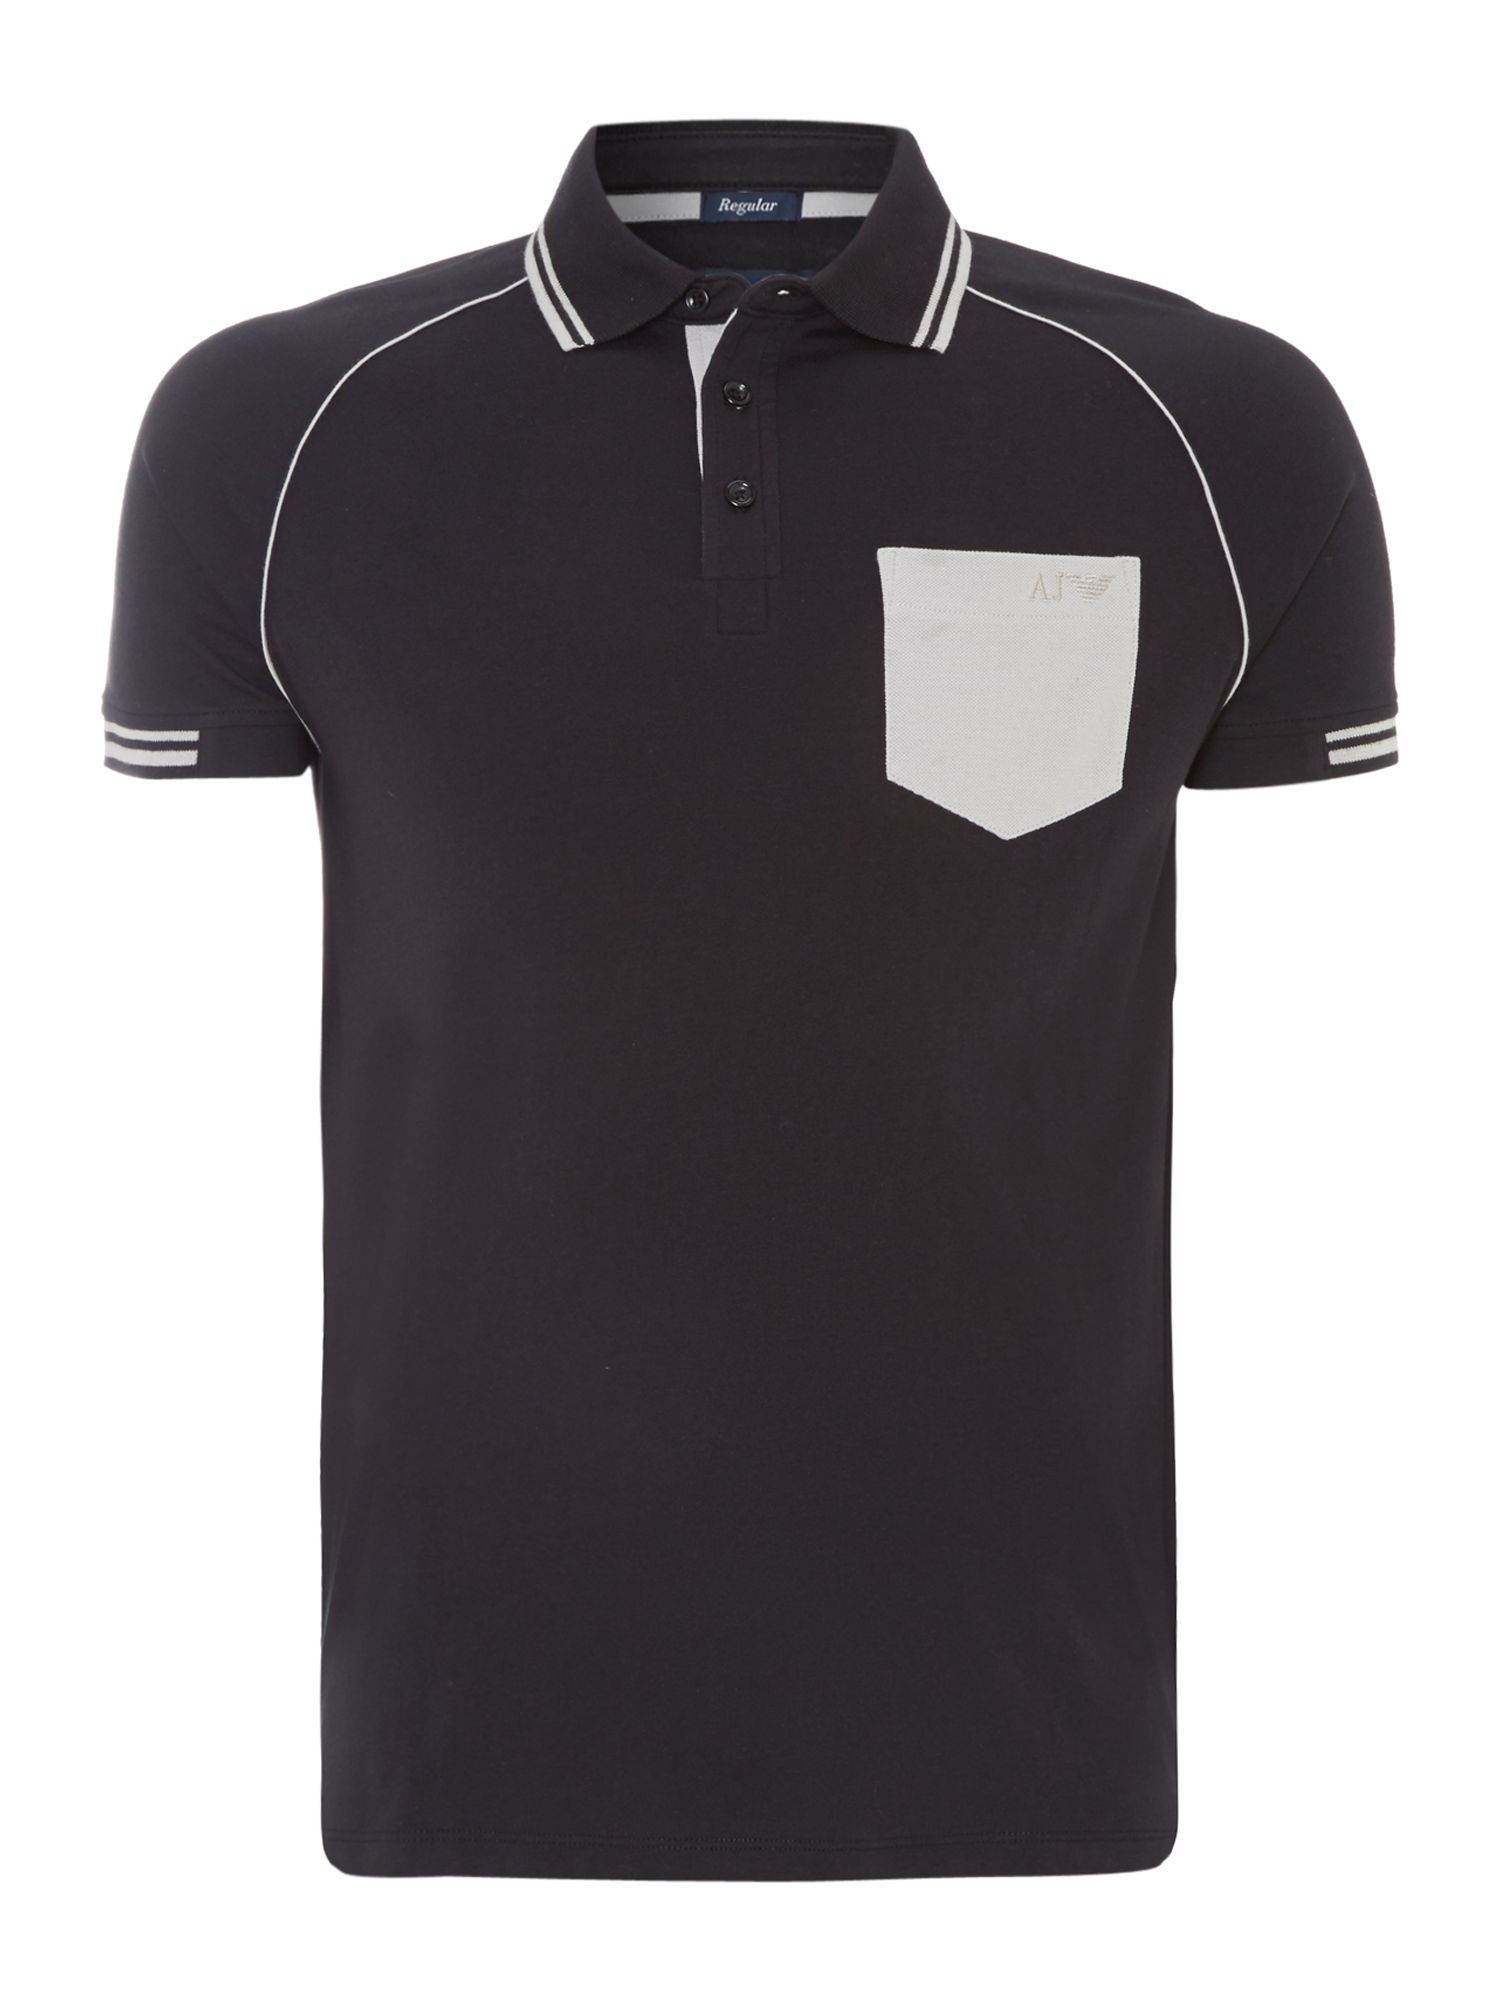 Contrast collar and pocket polo